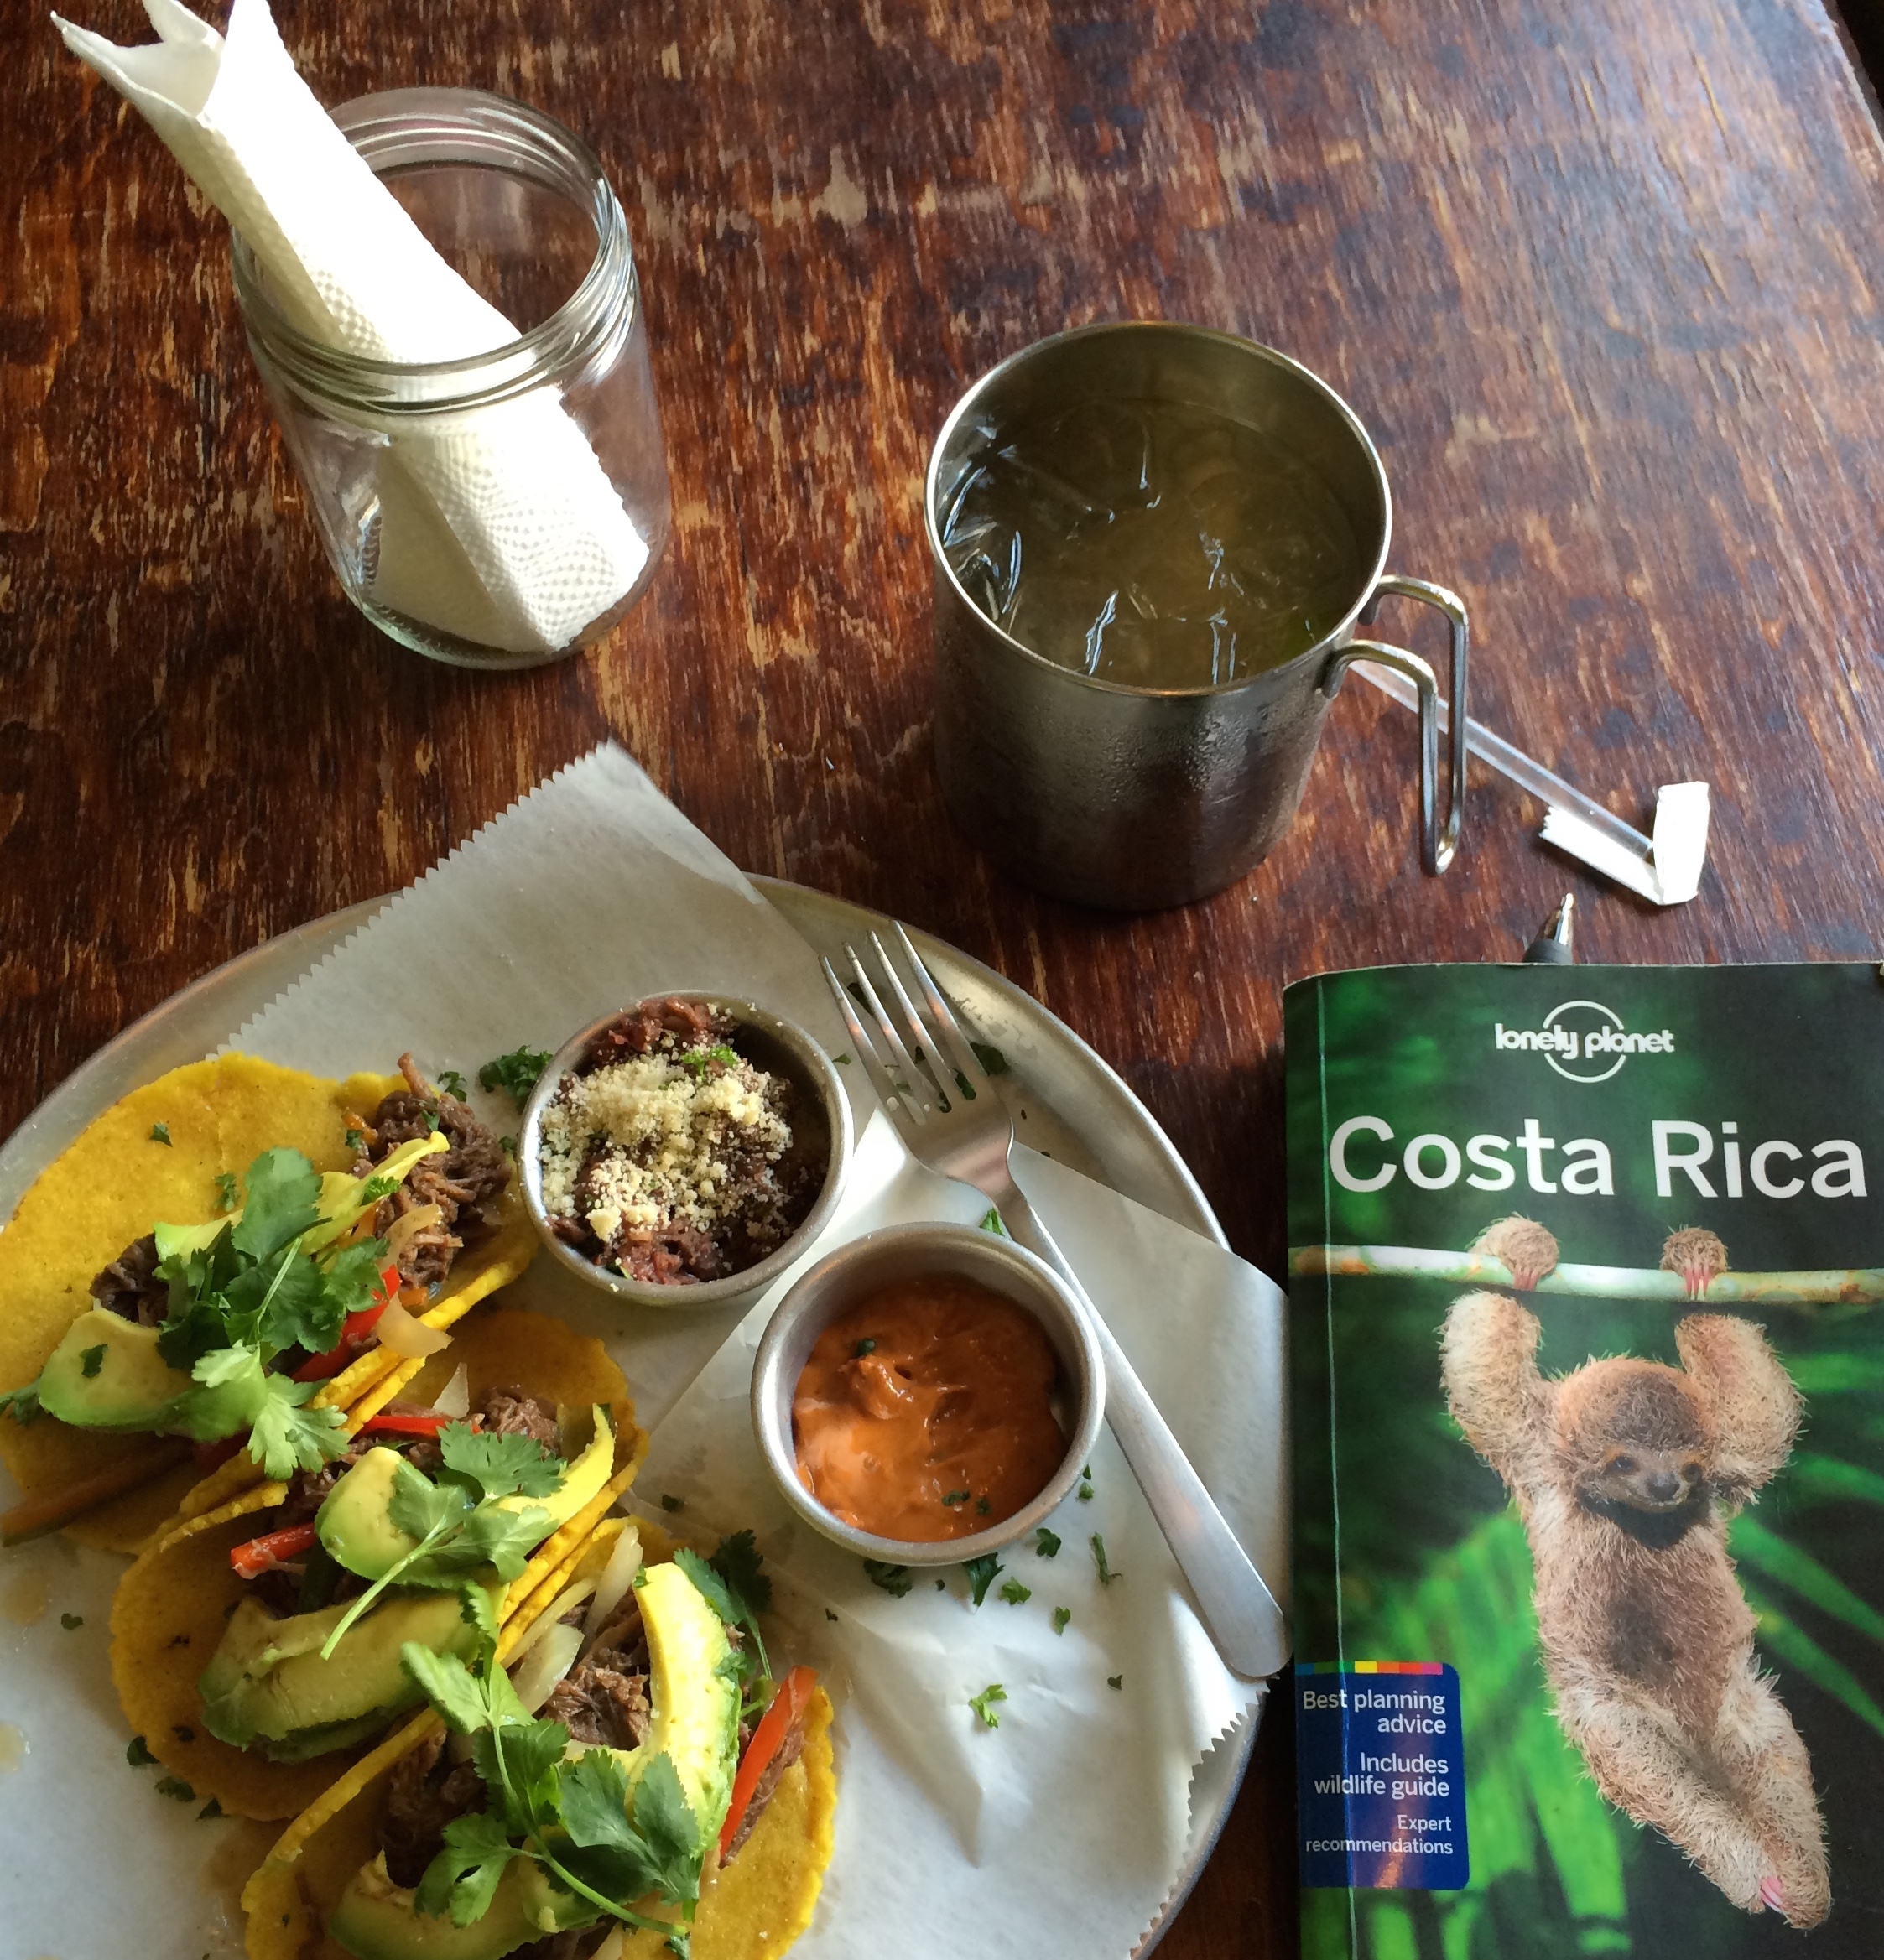 first meal in Costa Rica, and a very delicious one!